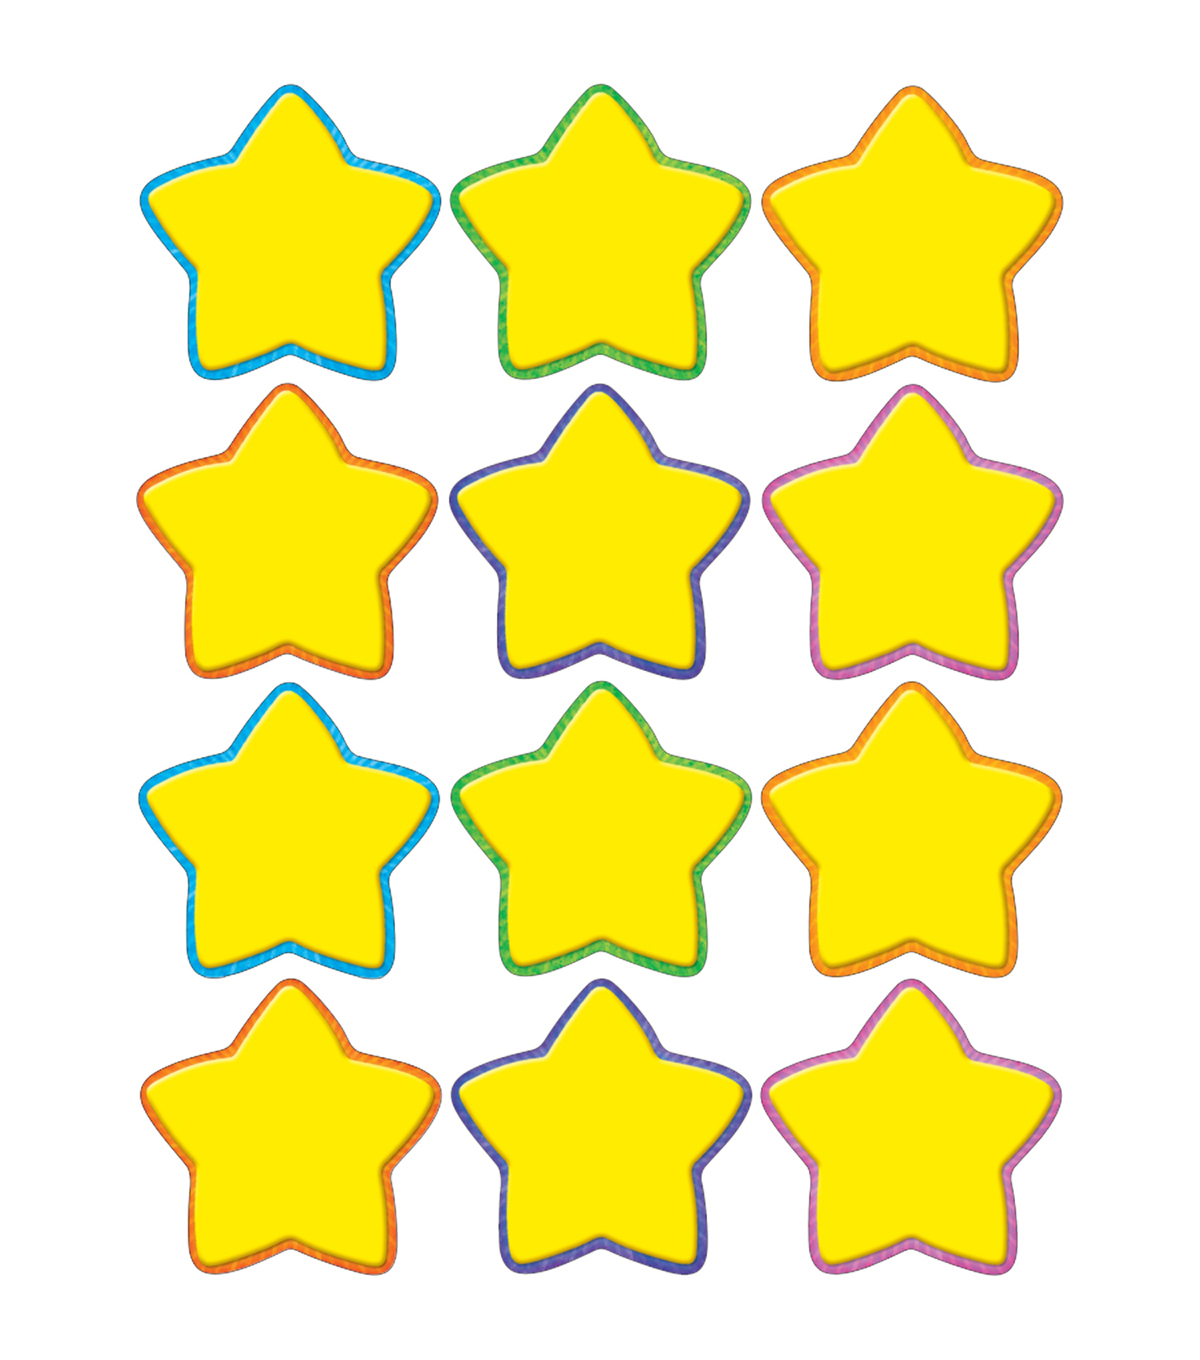 Yellow Stars Mini Accents 36/pk, Set Of 12 Packs